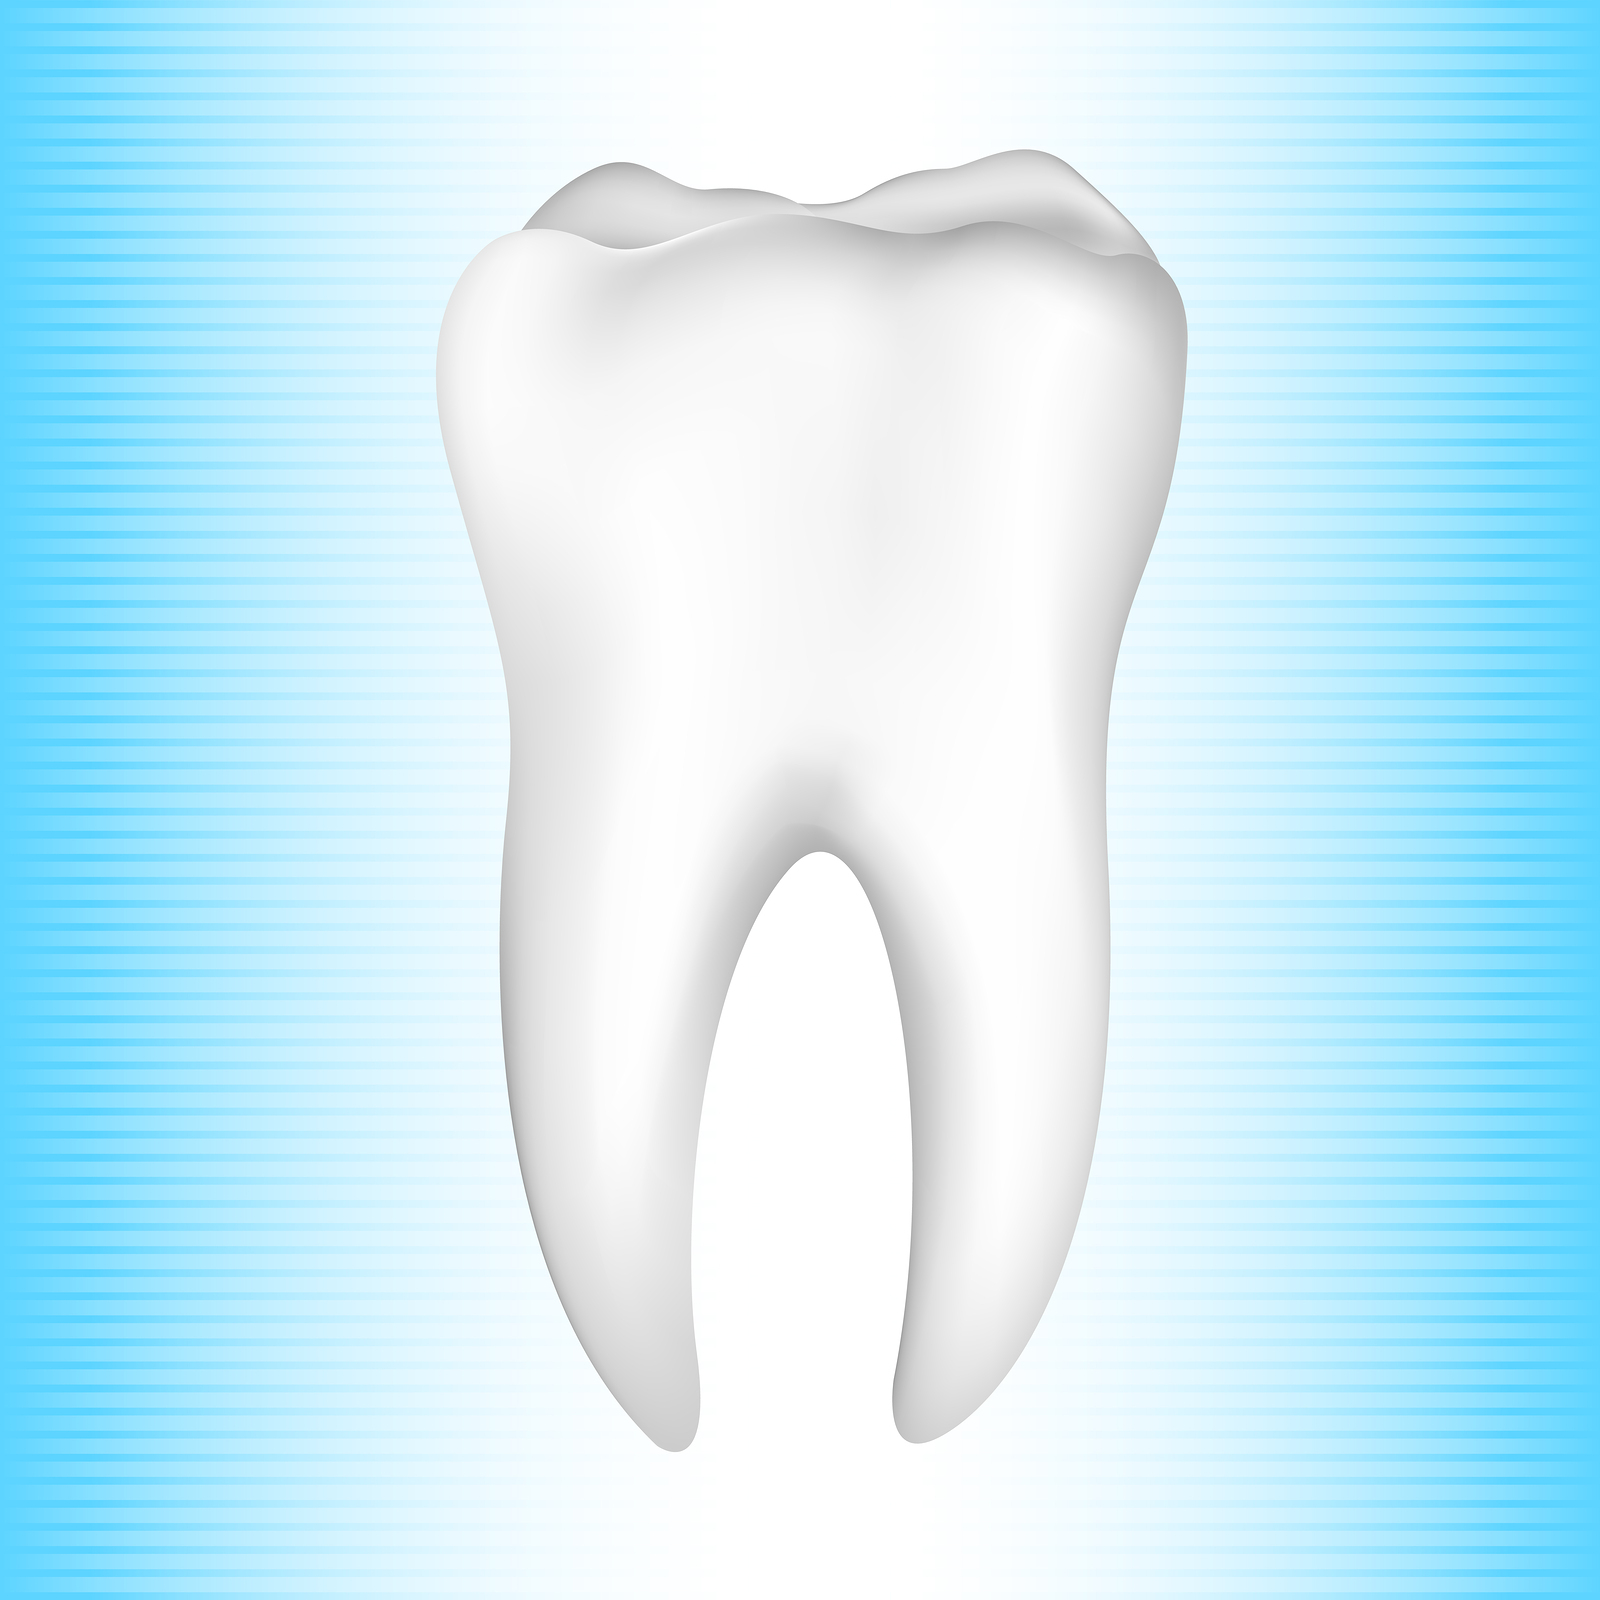 Bucks County Periodontics - Bensalem, PA - Dentists & Dental Services